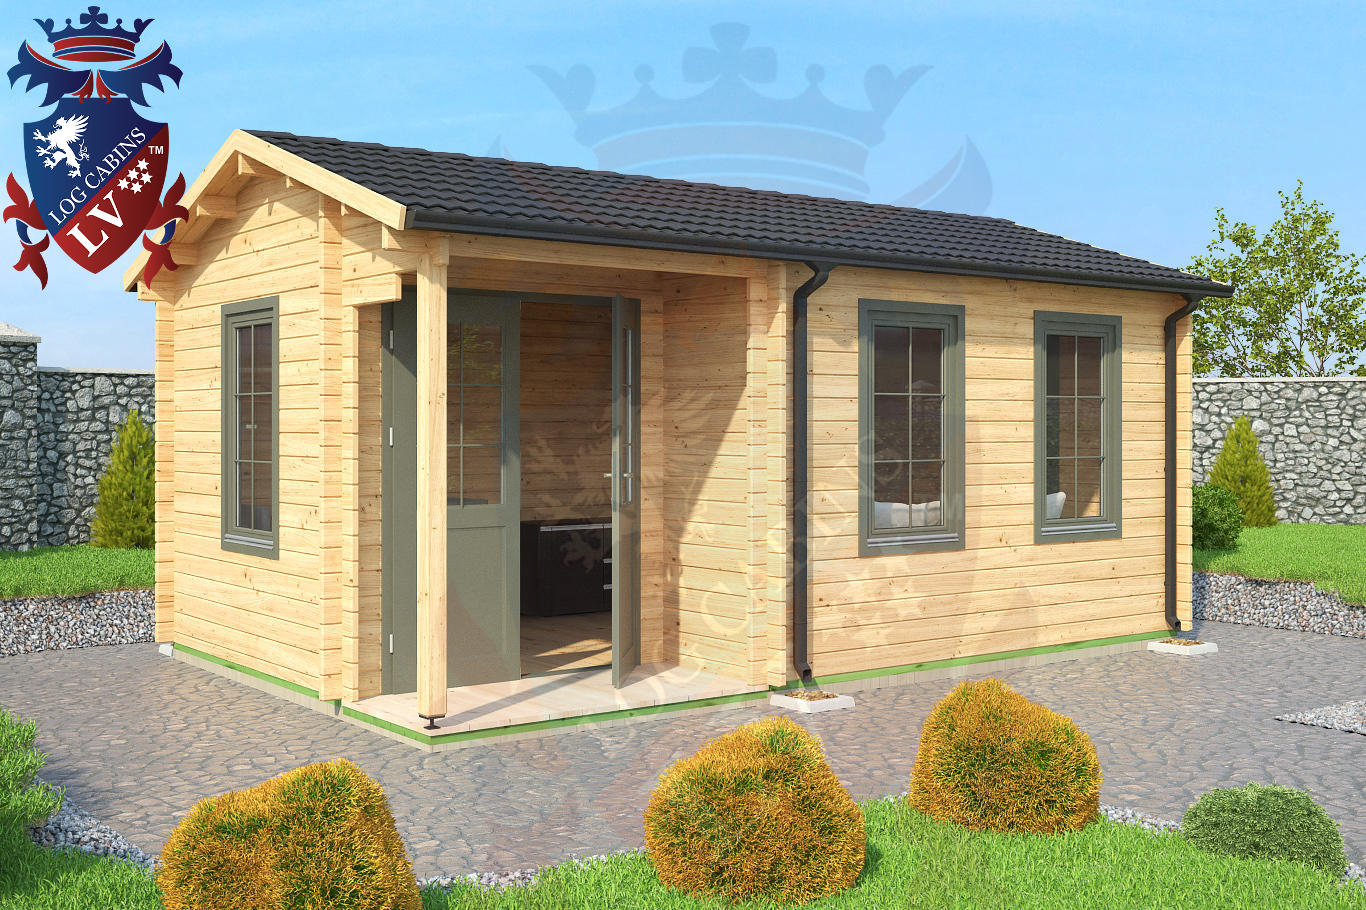 Deluxe Garden Office Log Cabin 5.5m X 3.5m. Full resolution  snapshot, nominally Width 1366 Height 910 pixels, snapshot with #097AC2.